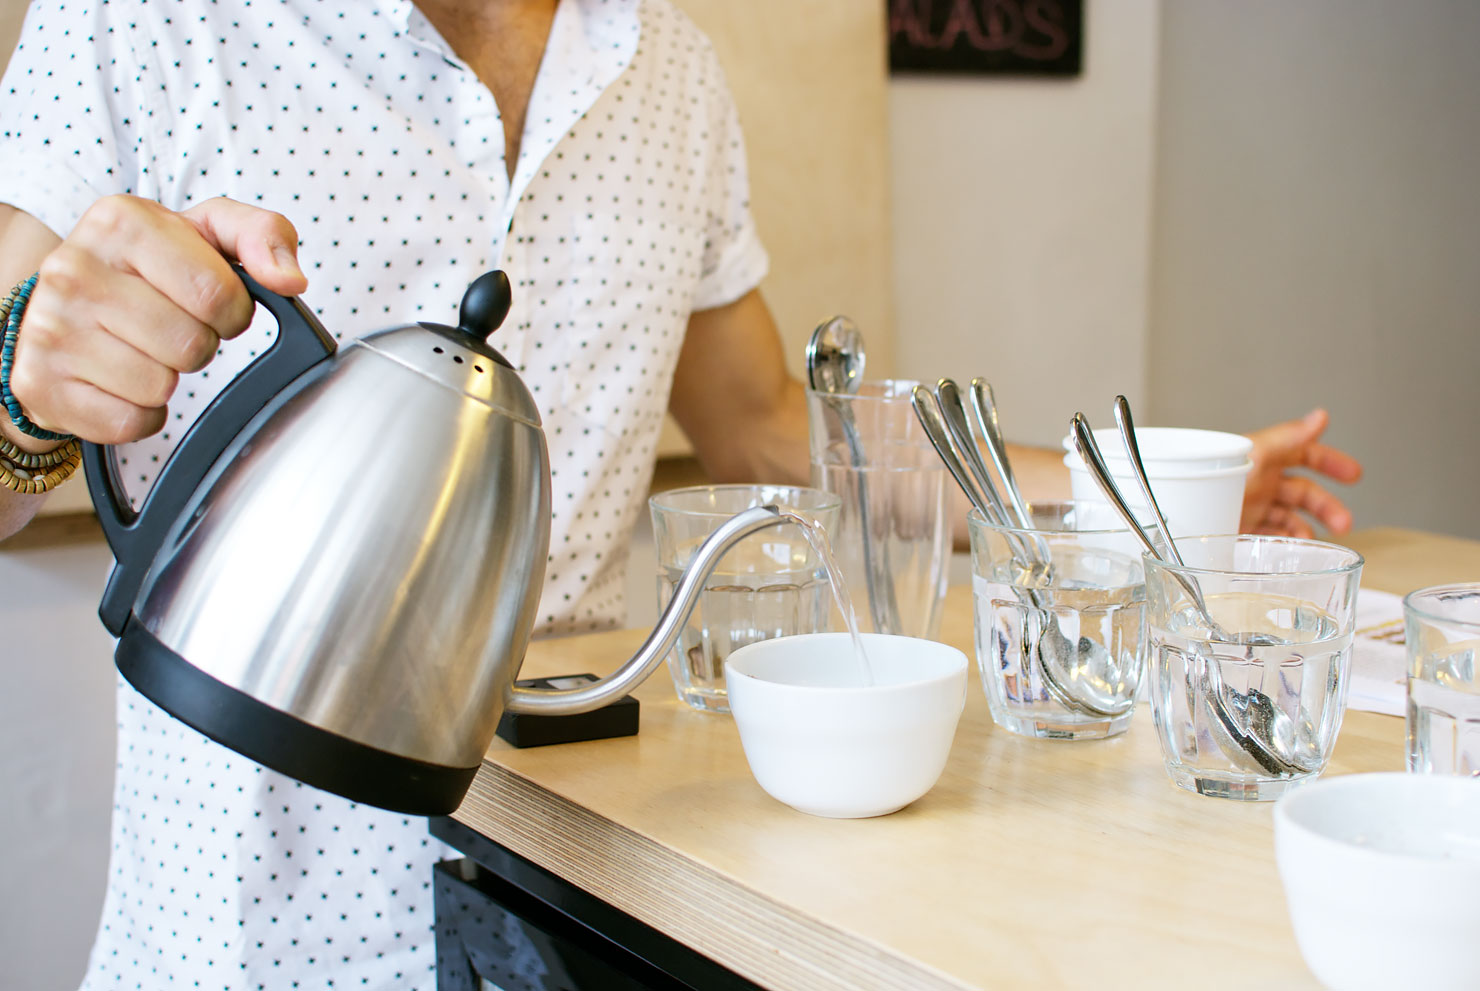 Coffee tasting (or cupping) at Drink, Shop & Dash - a new specialty coffee bar in King